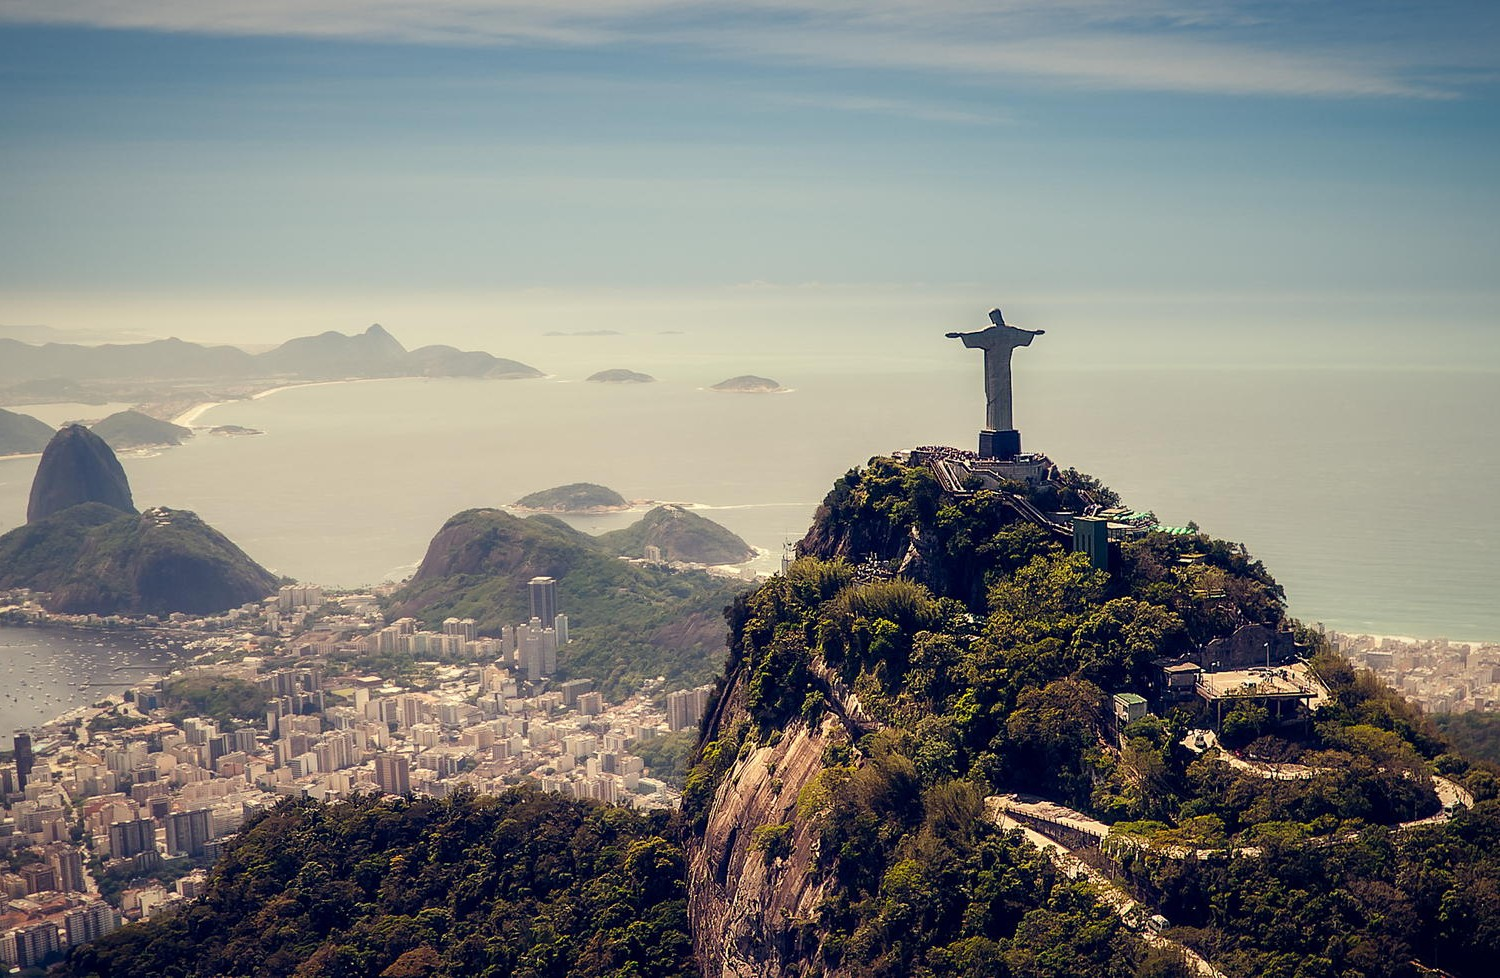 40 Photos That Will Make You Want To Visit Rio de Janeiro